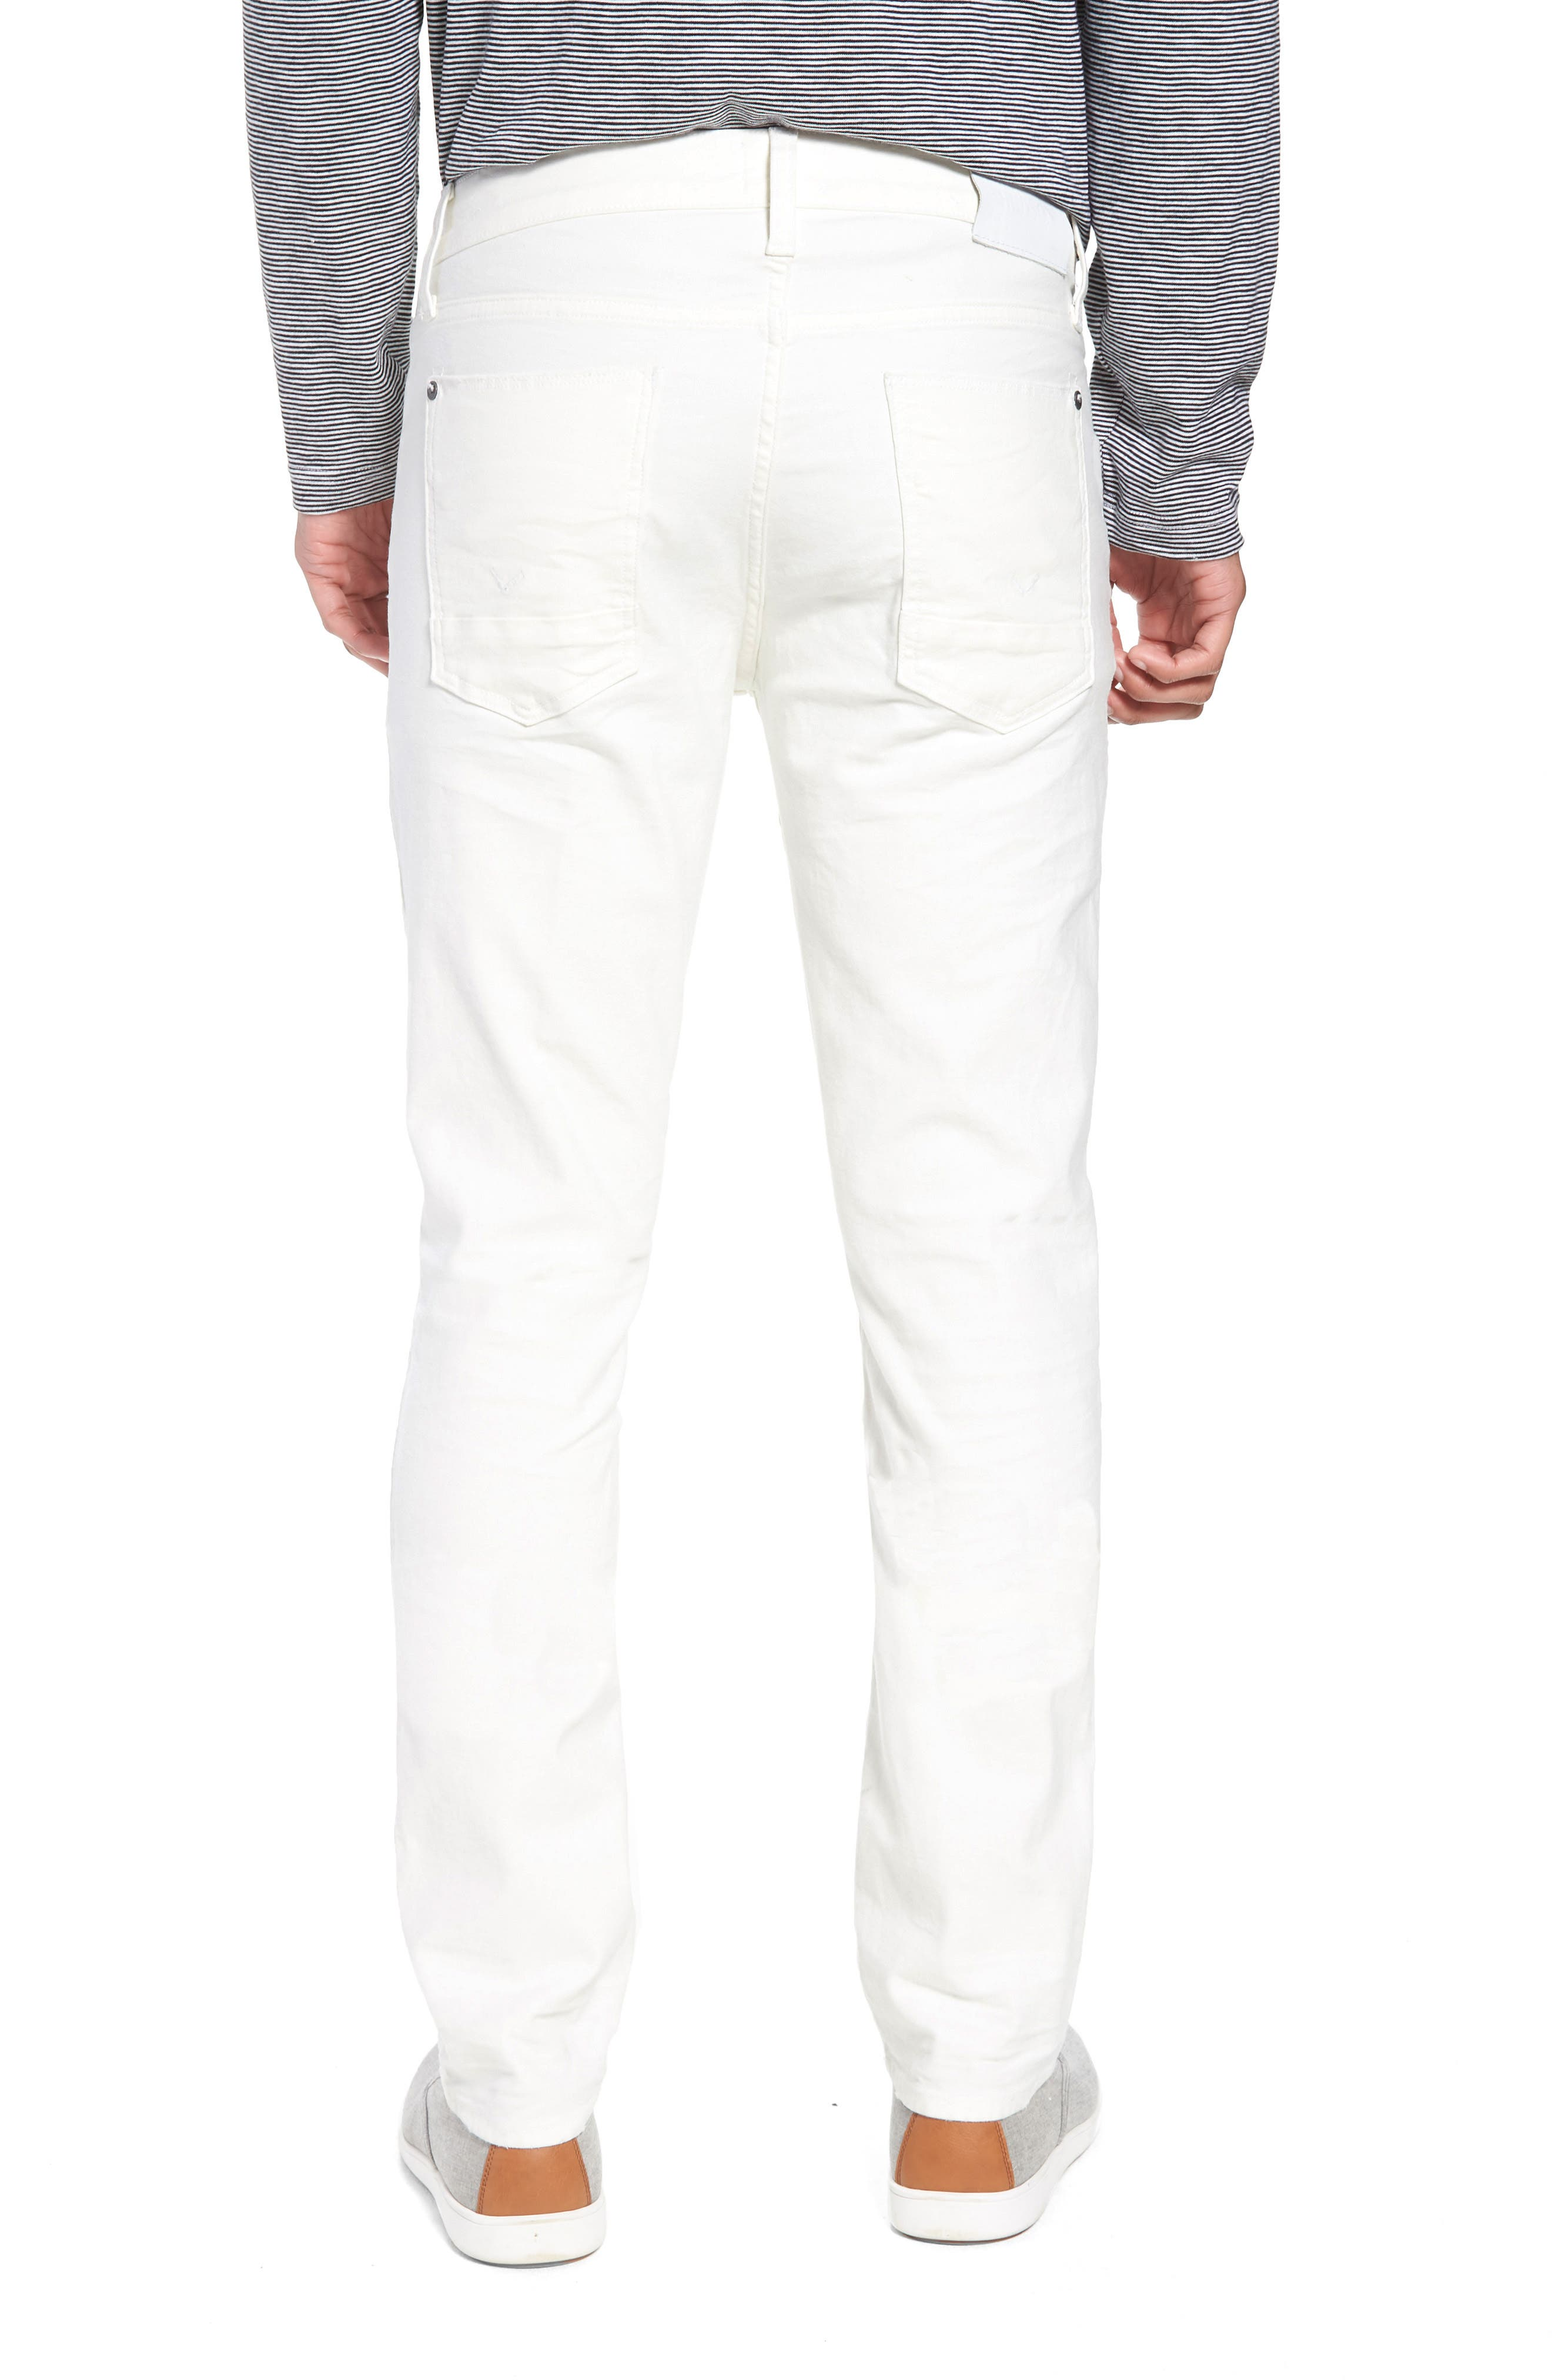 Blake Slim Fit Jeans,                             Alternate thumbnail 2, color,                             110